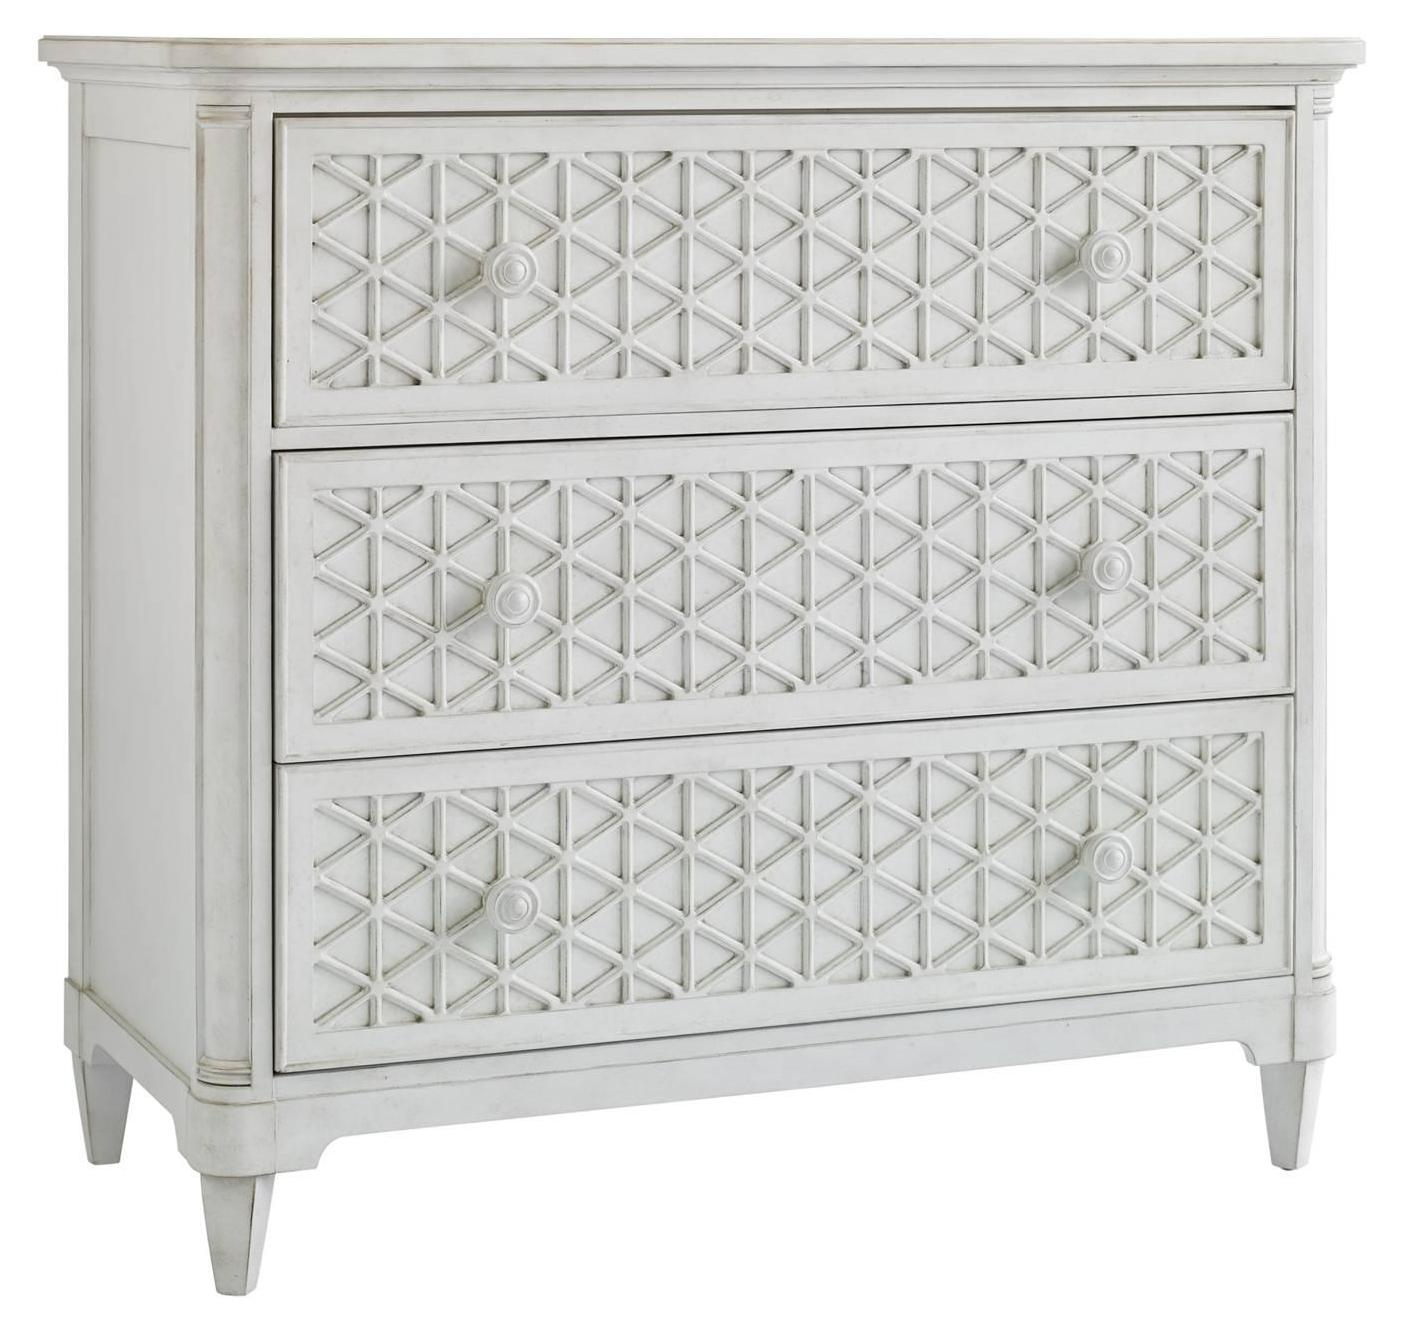 Stanley Furniture Cypress Grove   Media Chest - Item Number: 451-23-04